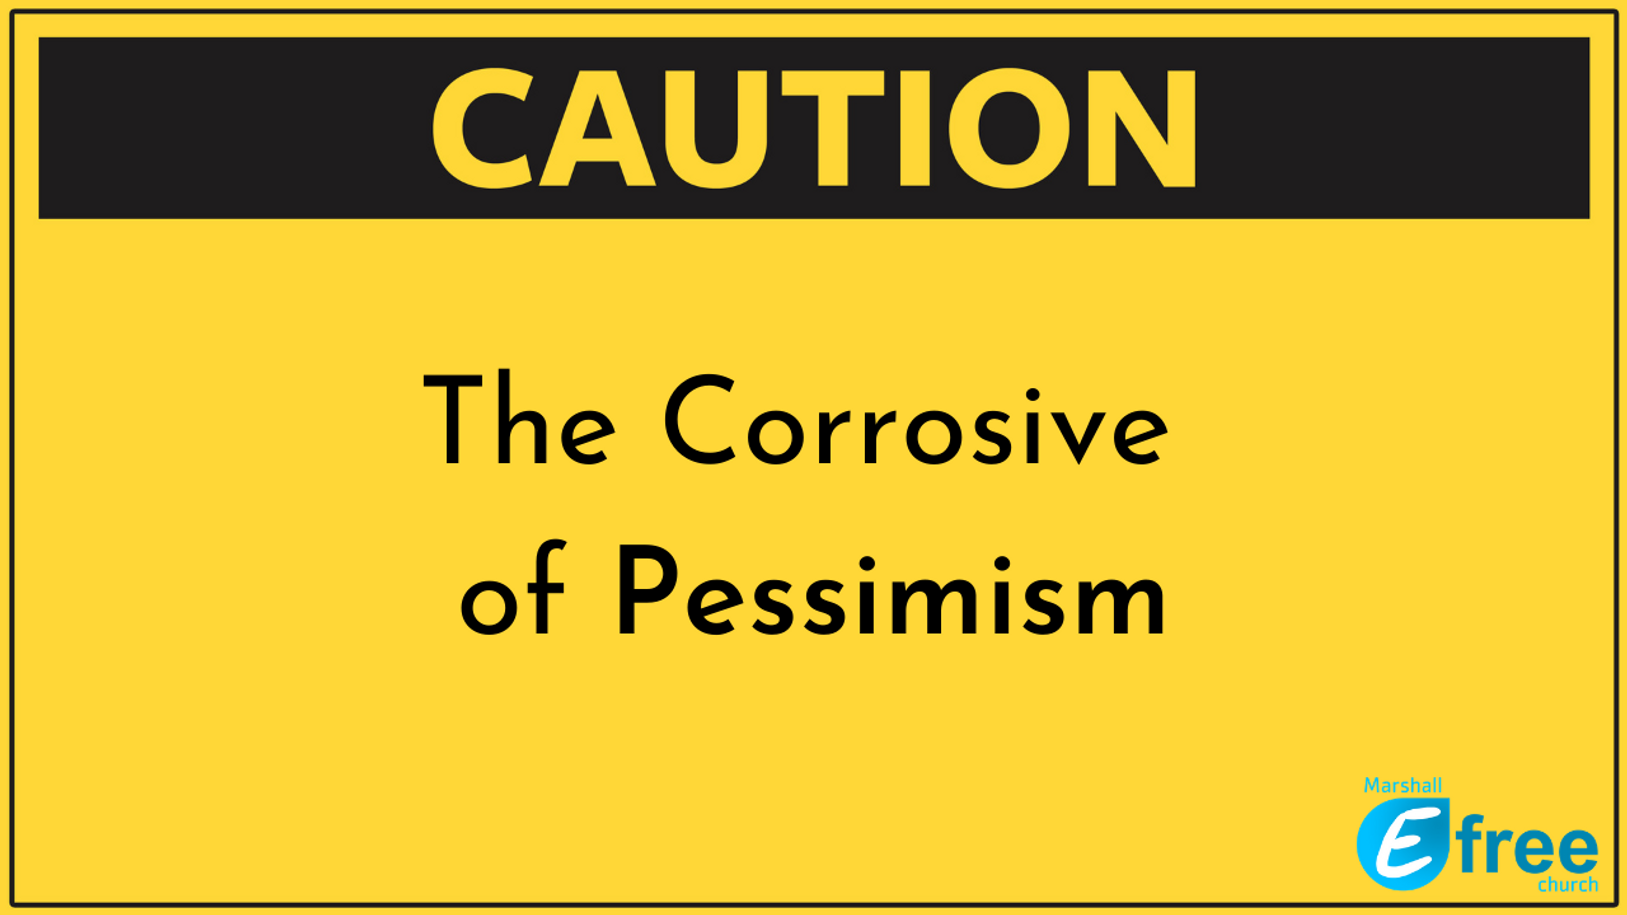 The Corrosive of Pessimism